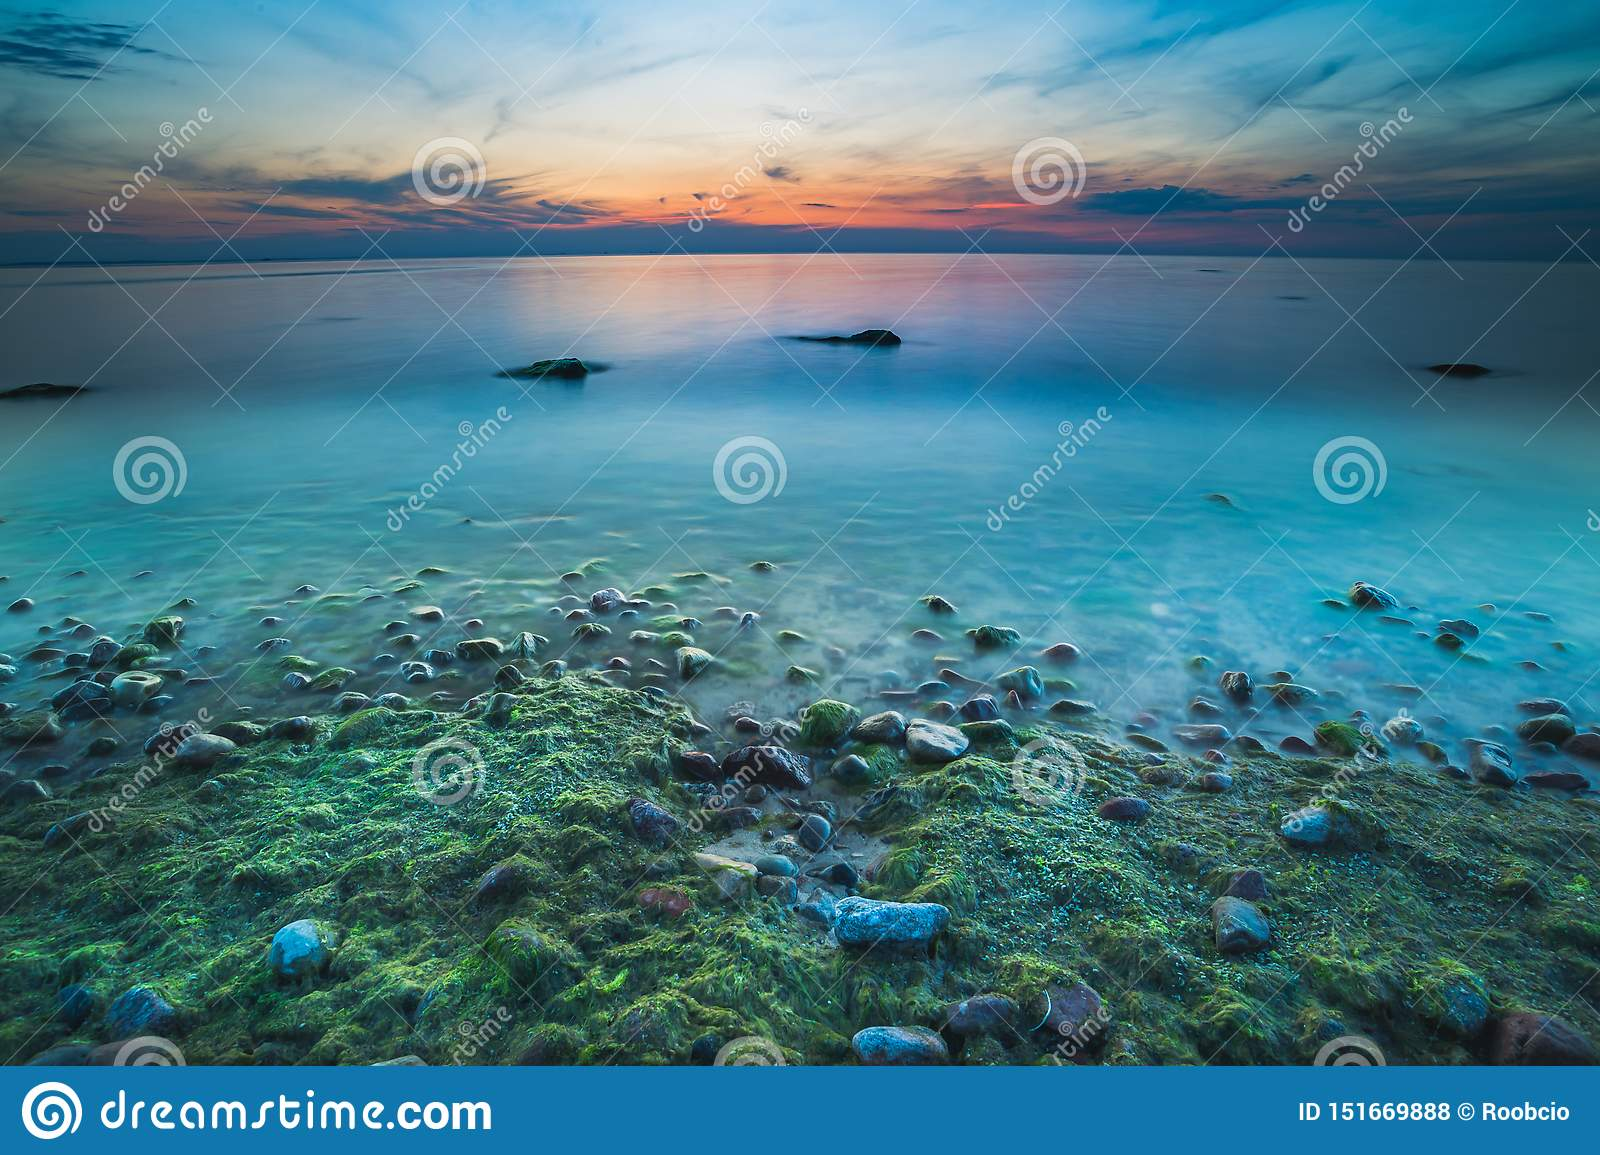 Magnificent seascape at sunset with stones covered seaweeds